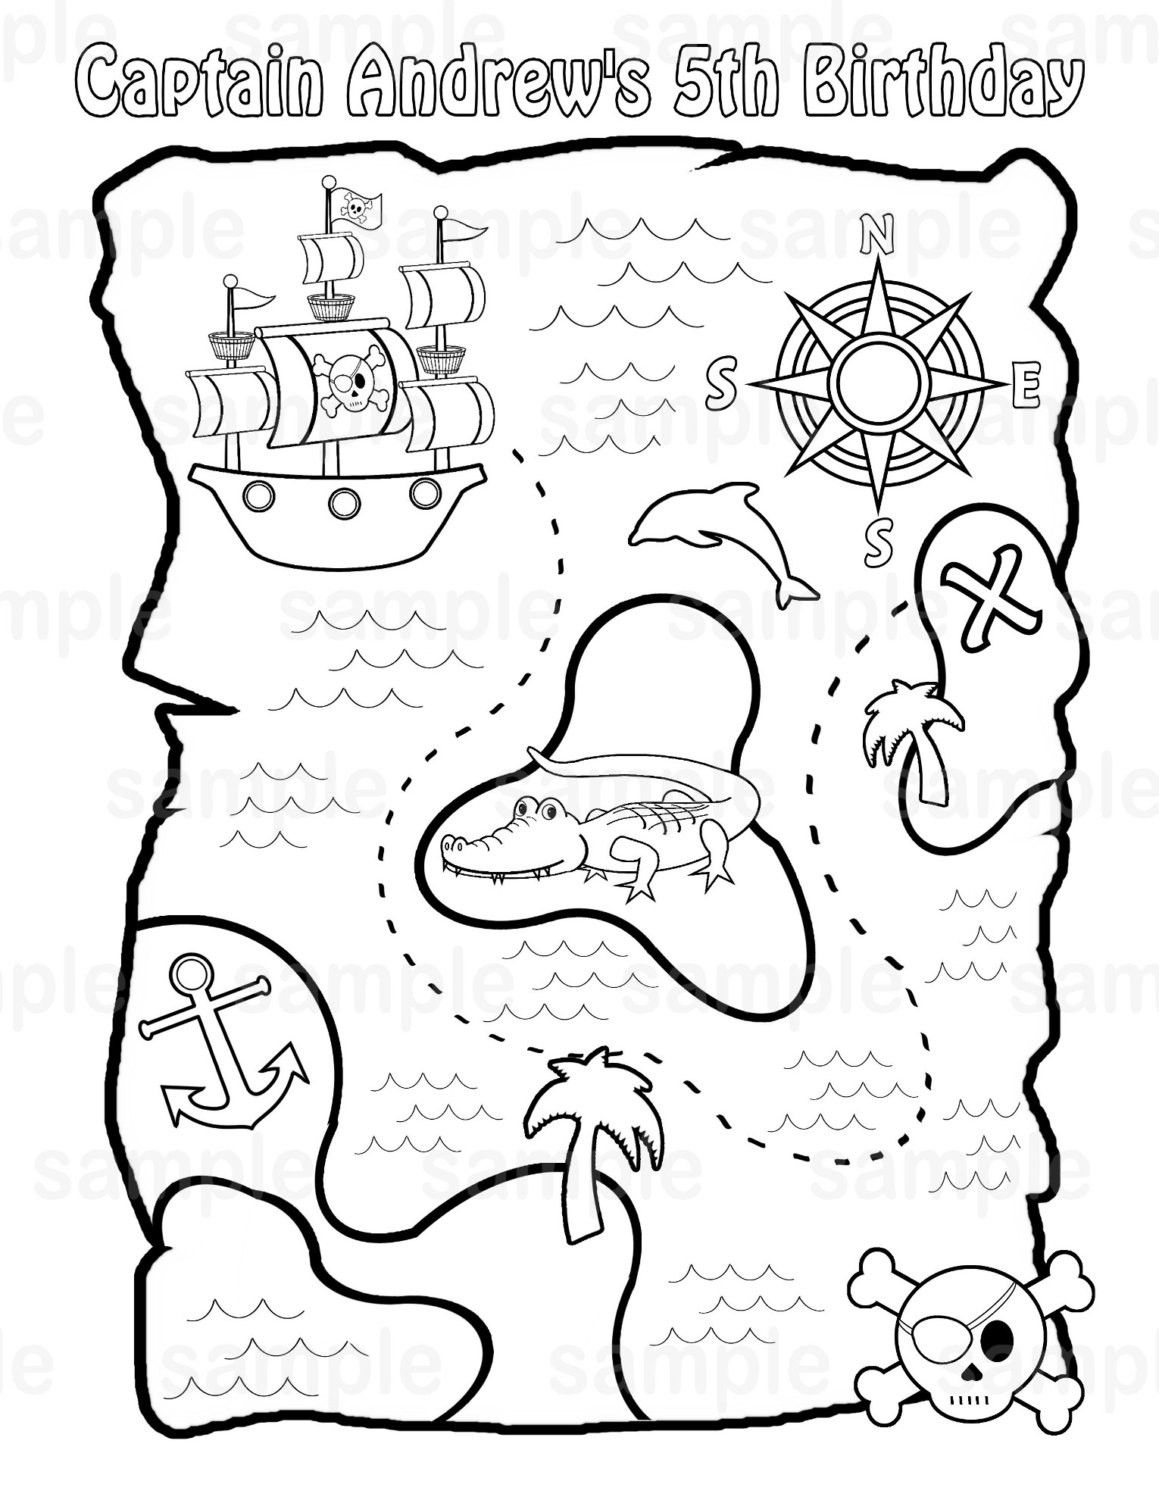 Printable Pirate Treasure Map For Kids Adult Coloring Pages